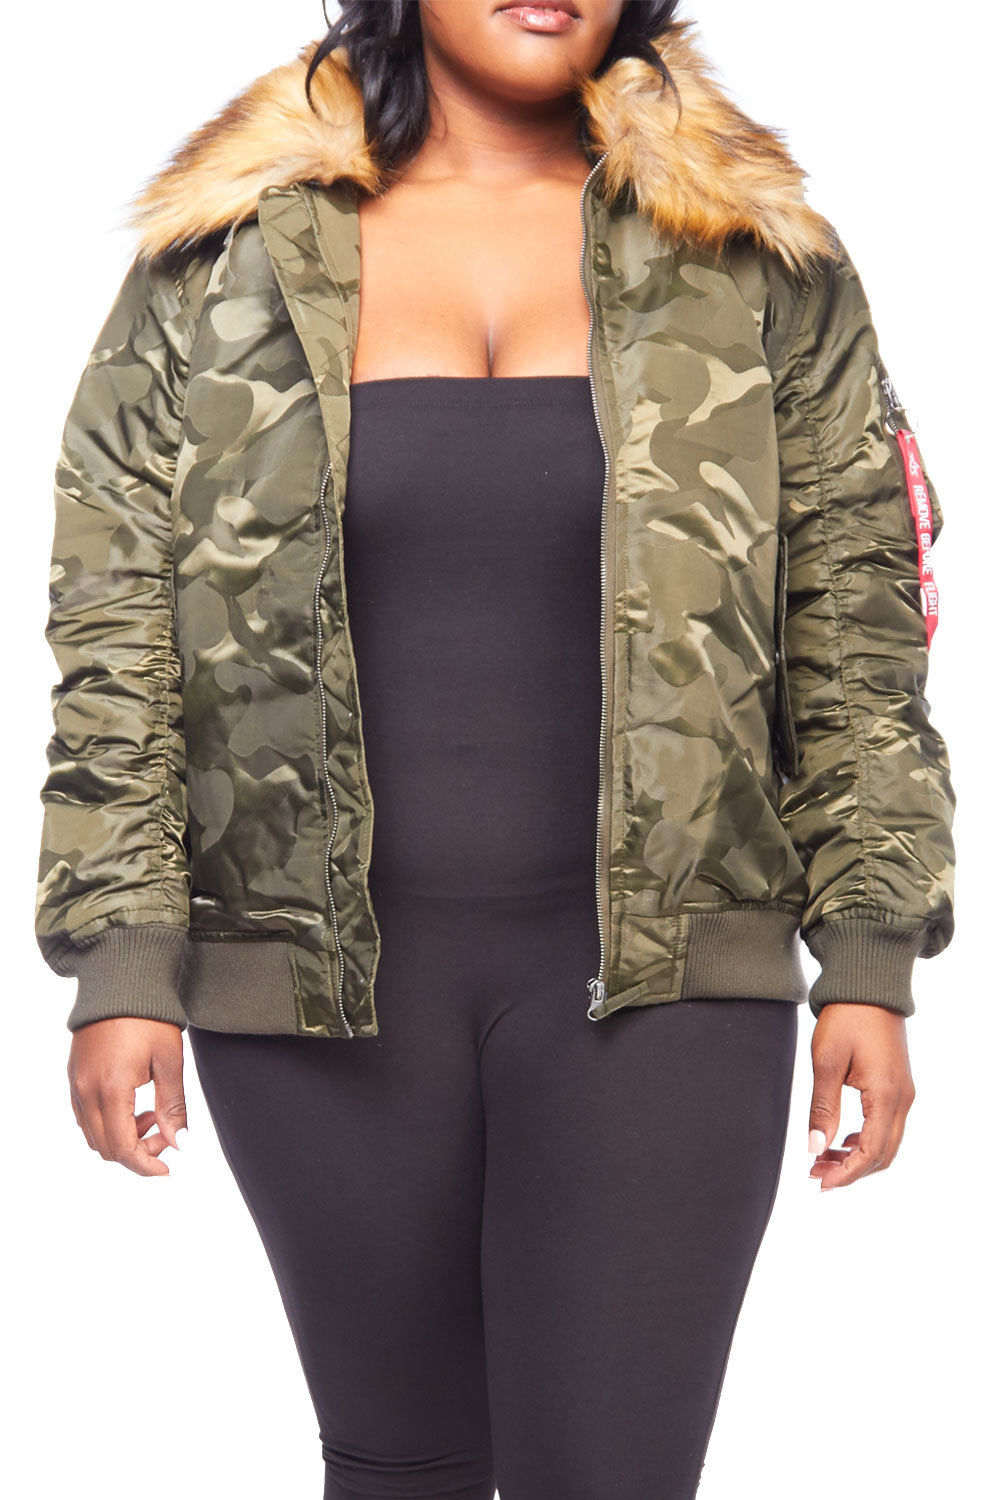 Womens Plus Size Winter Faux Fur Puffer Bomber Parka Jacket RJK-728P-XL-Olive Camo Taupe by Genx